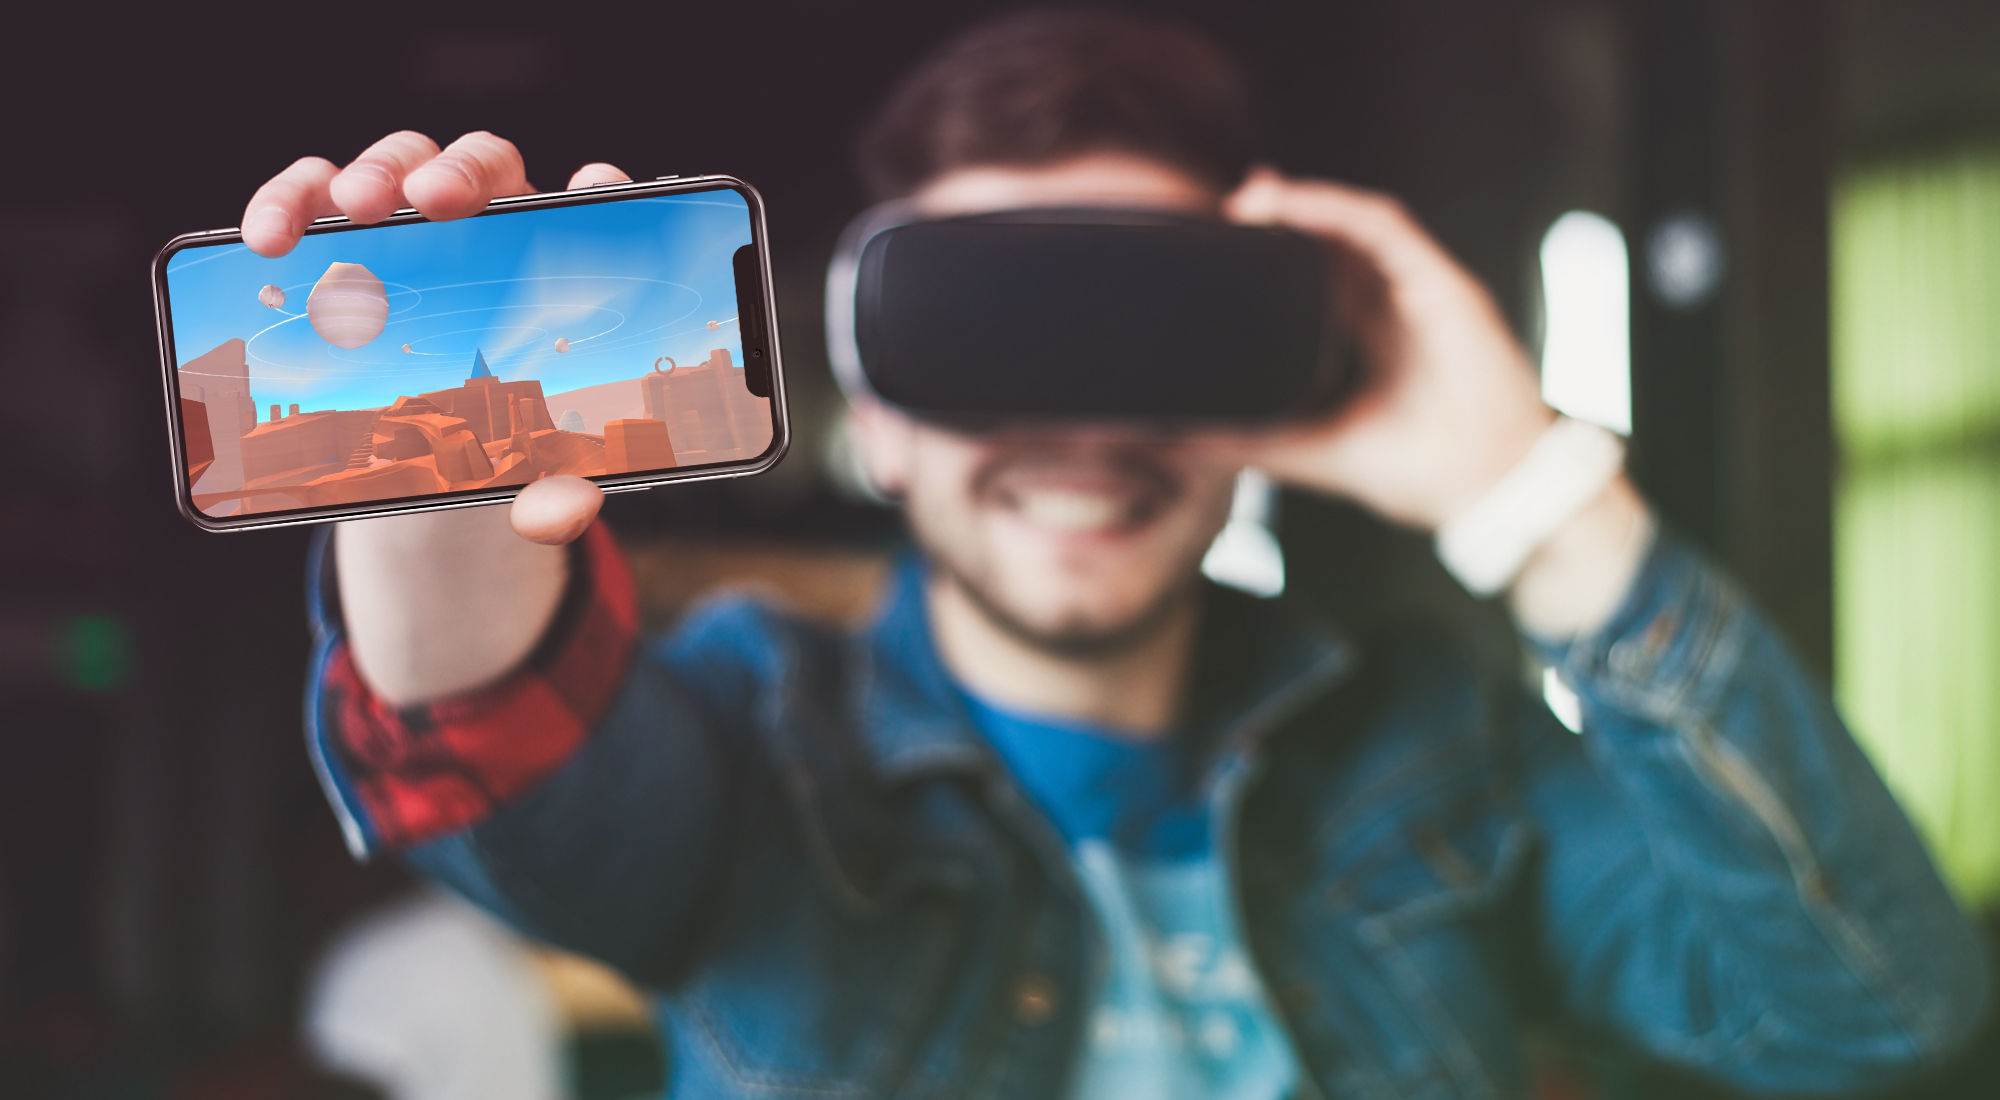 Man holding phone and VR headset